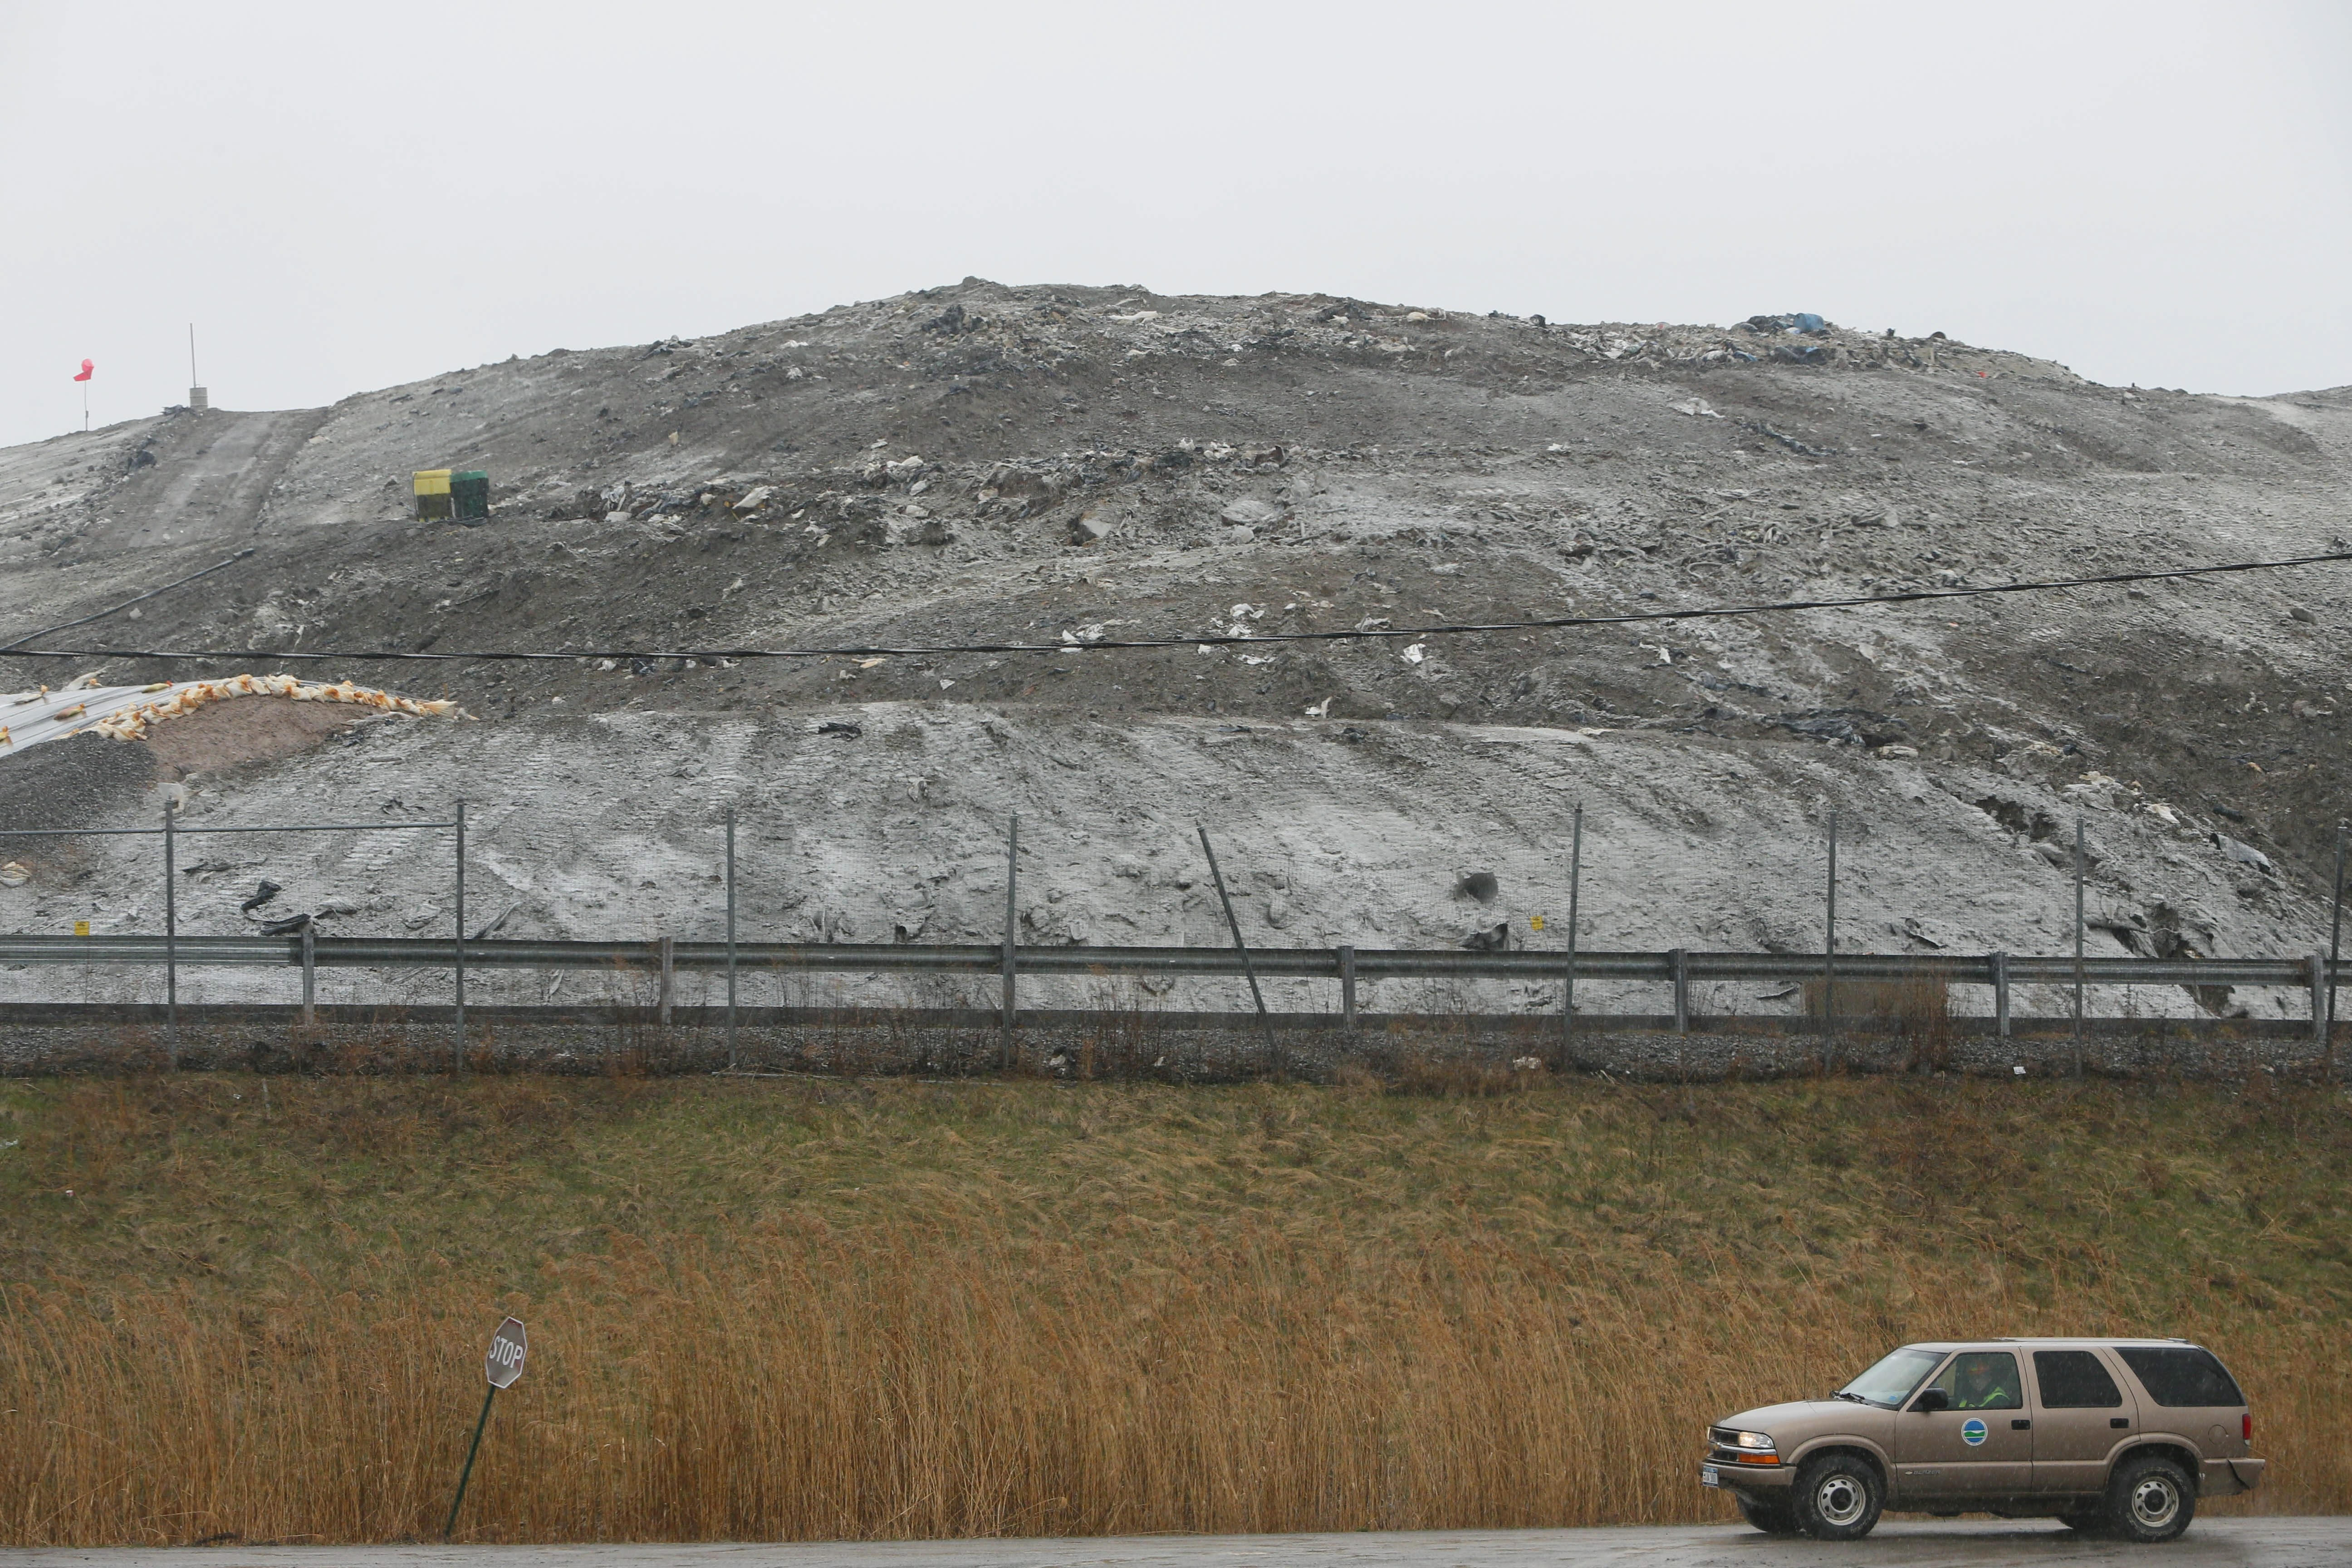 CWM Chemical Services hazardous waste landfill is almost out of room. The company wants to build a new one on its 710-acre property in Lewiston and Porter, a plan that has met opposition.